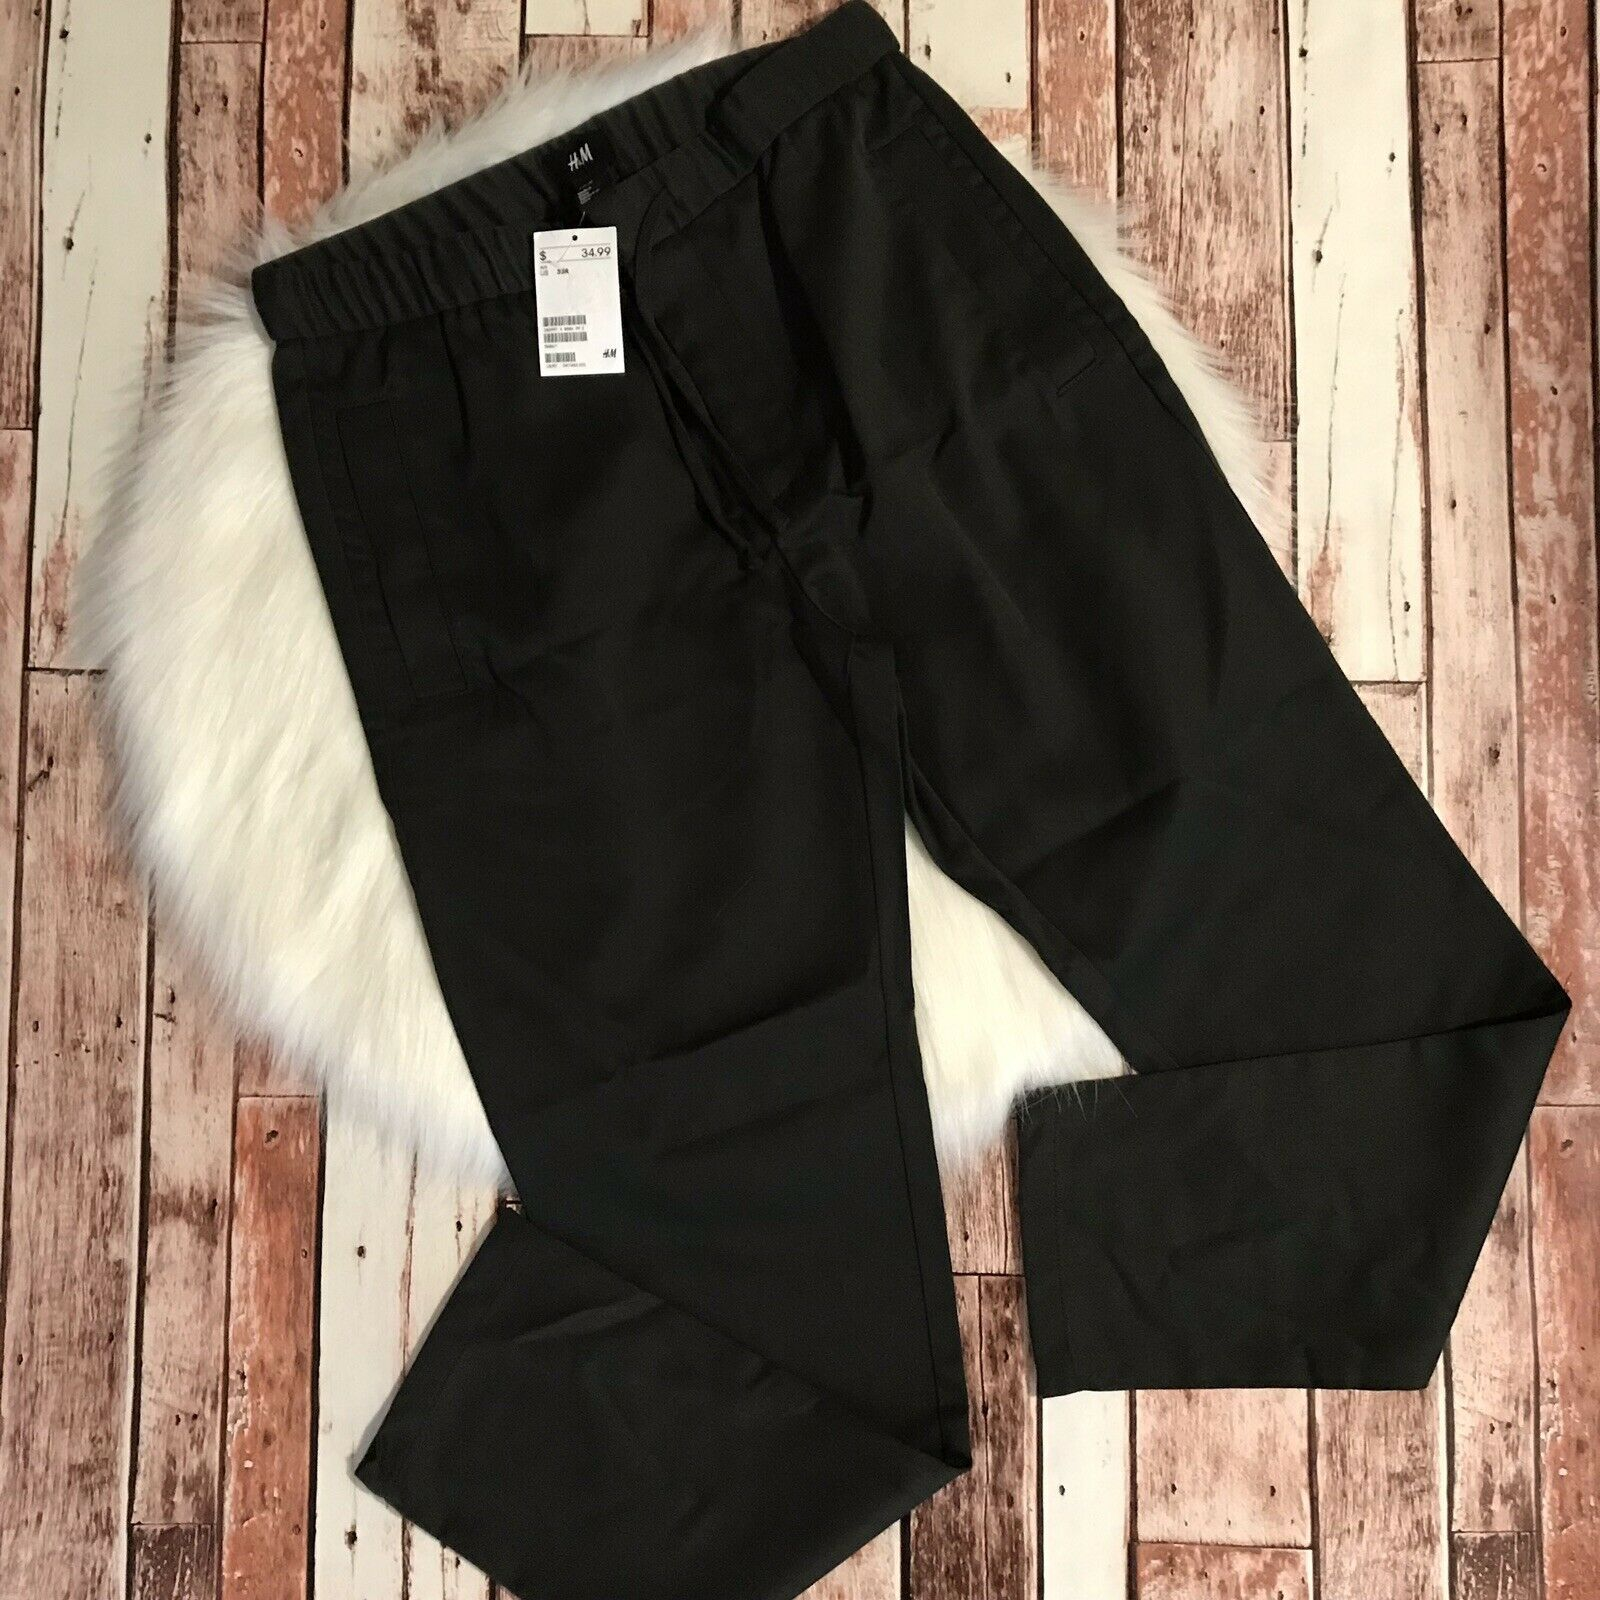 H&M Pants Olive Green Size 33 R New With Tags